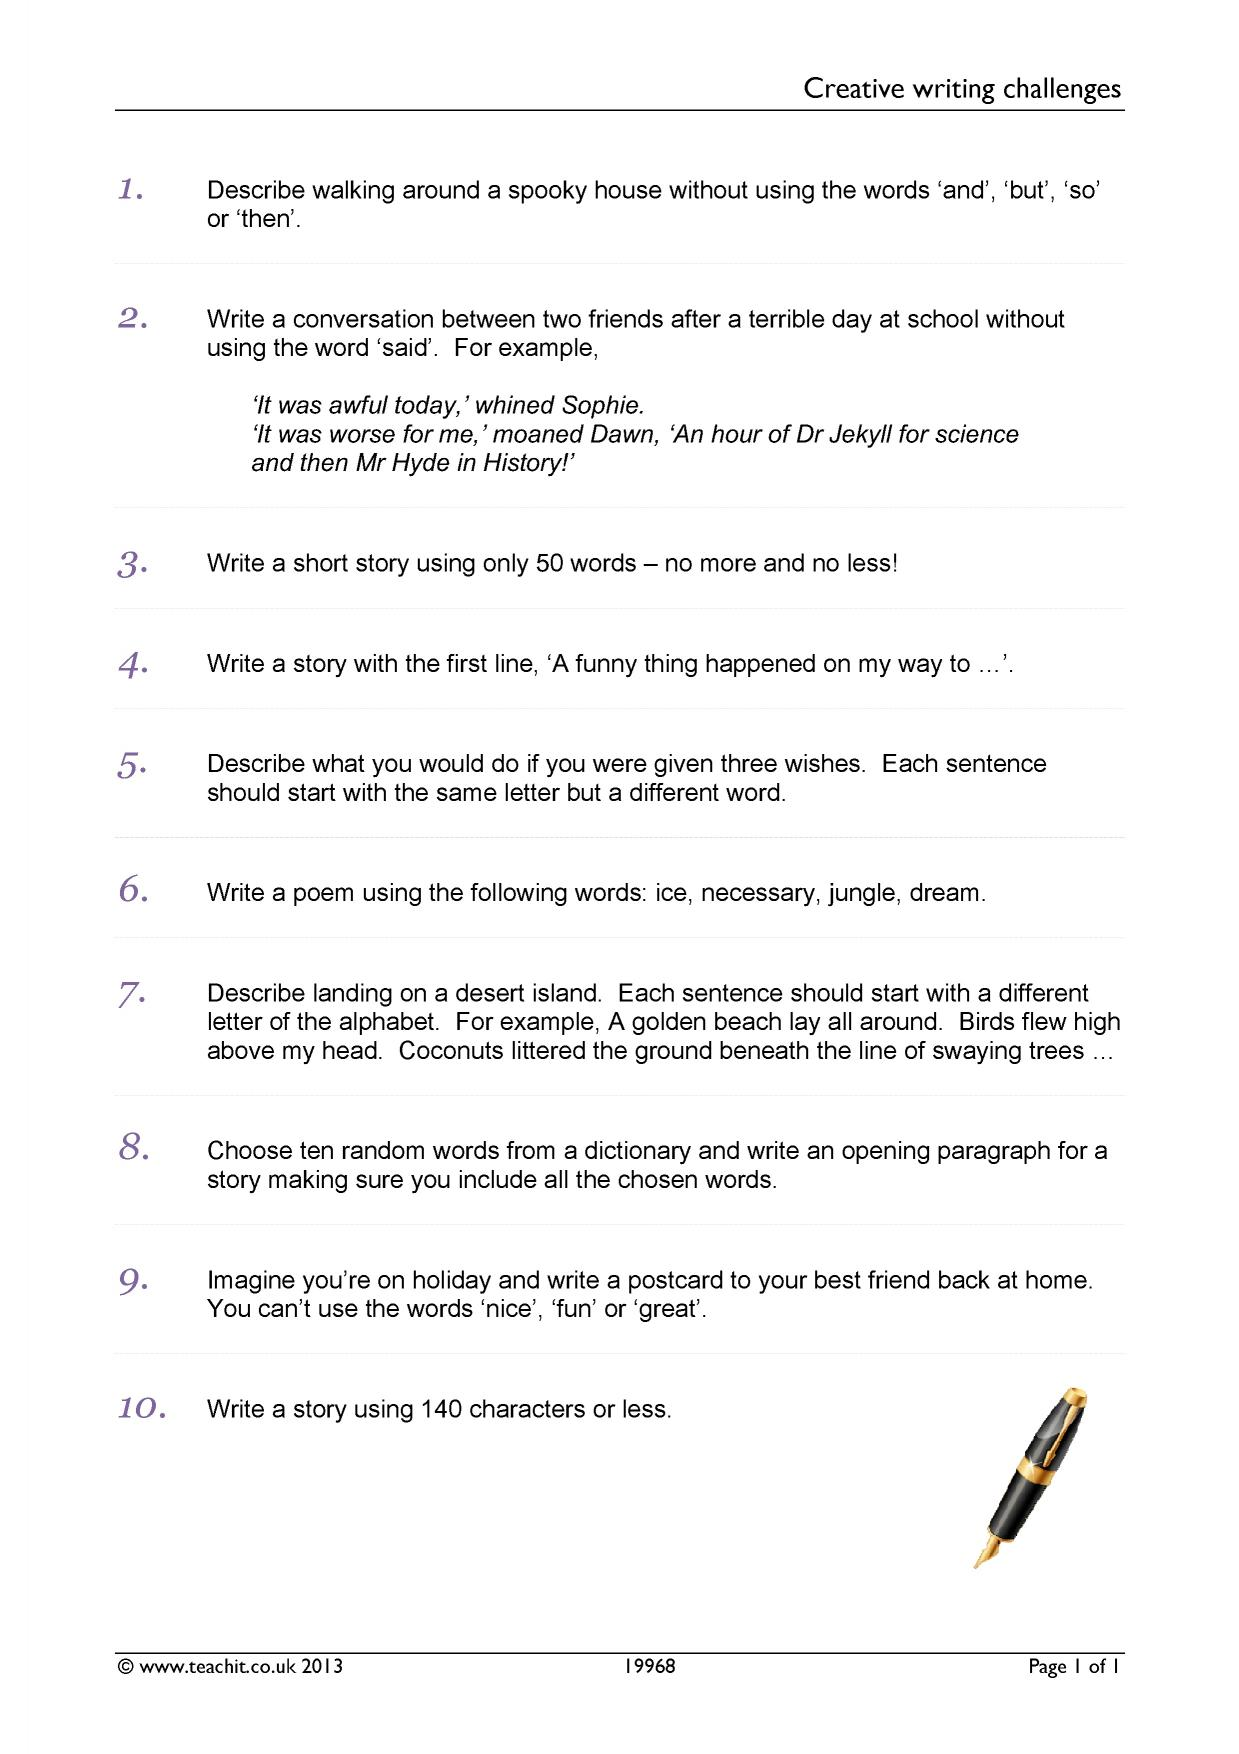 Creative Writing Homework Ks3